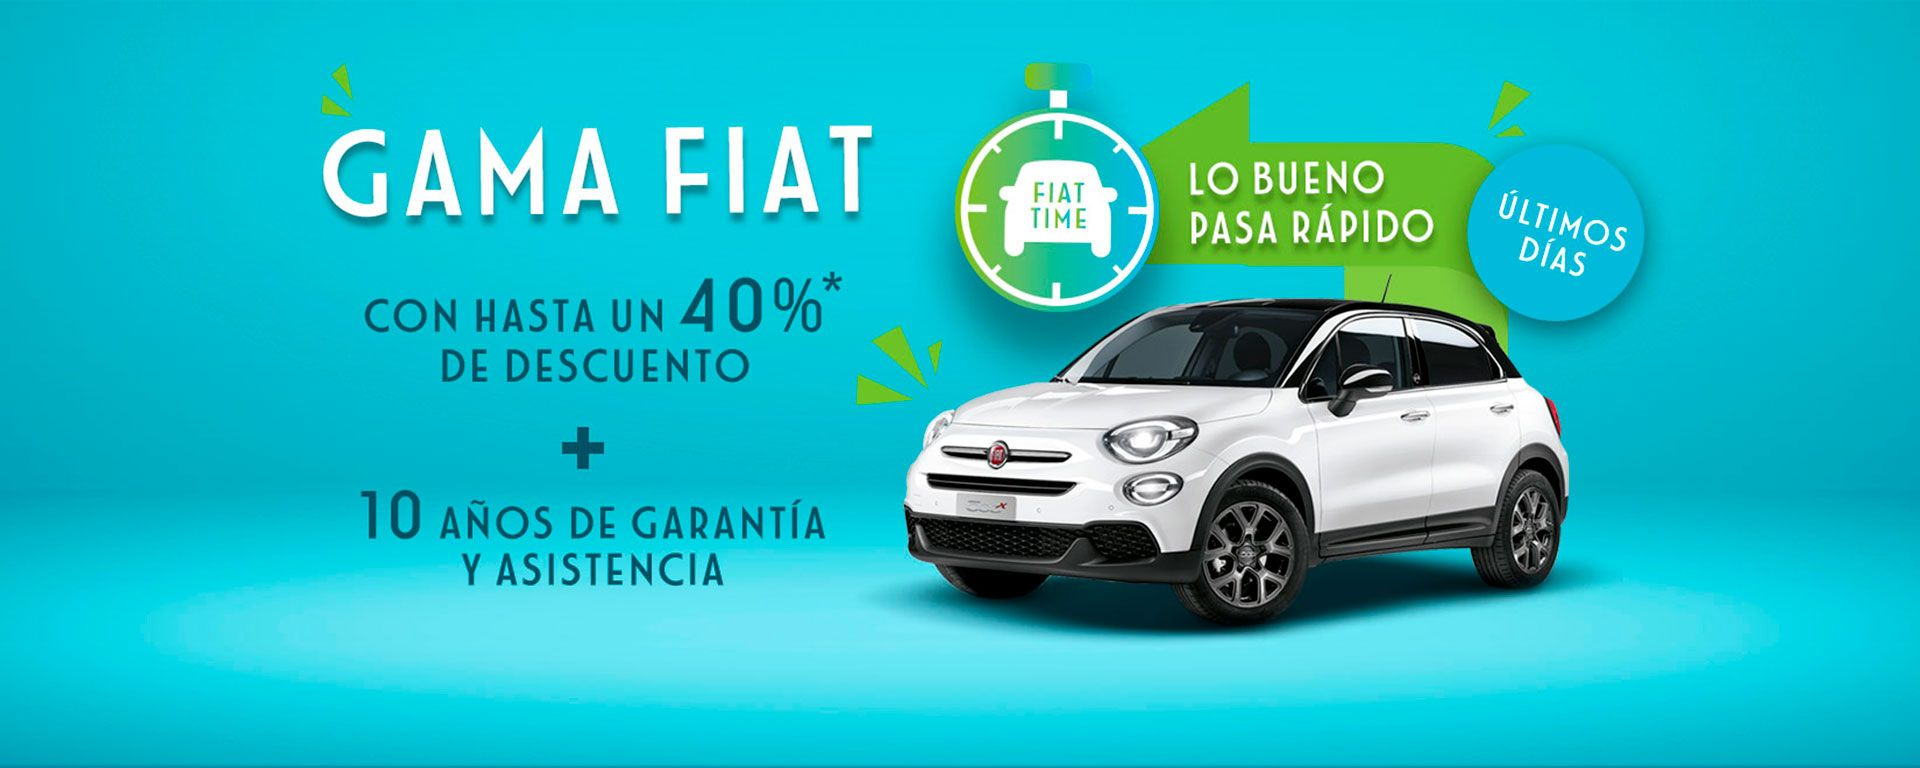 FIAT TIME.